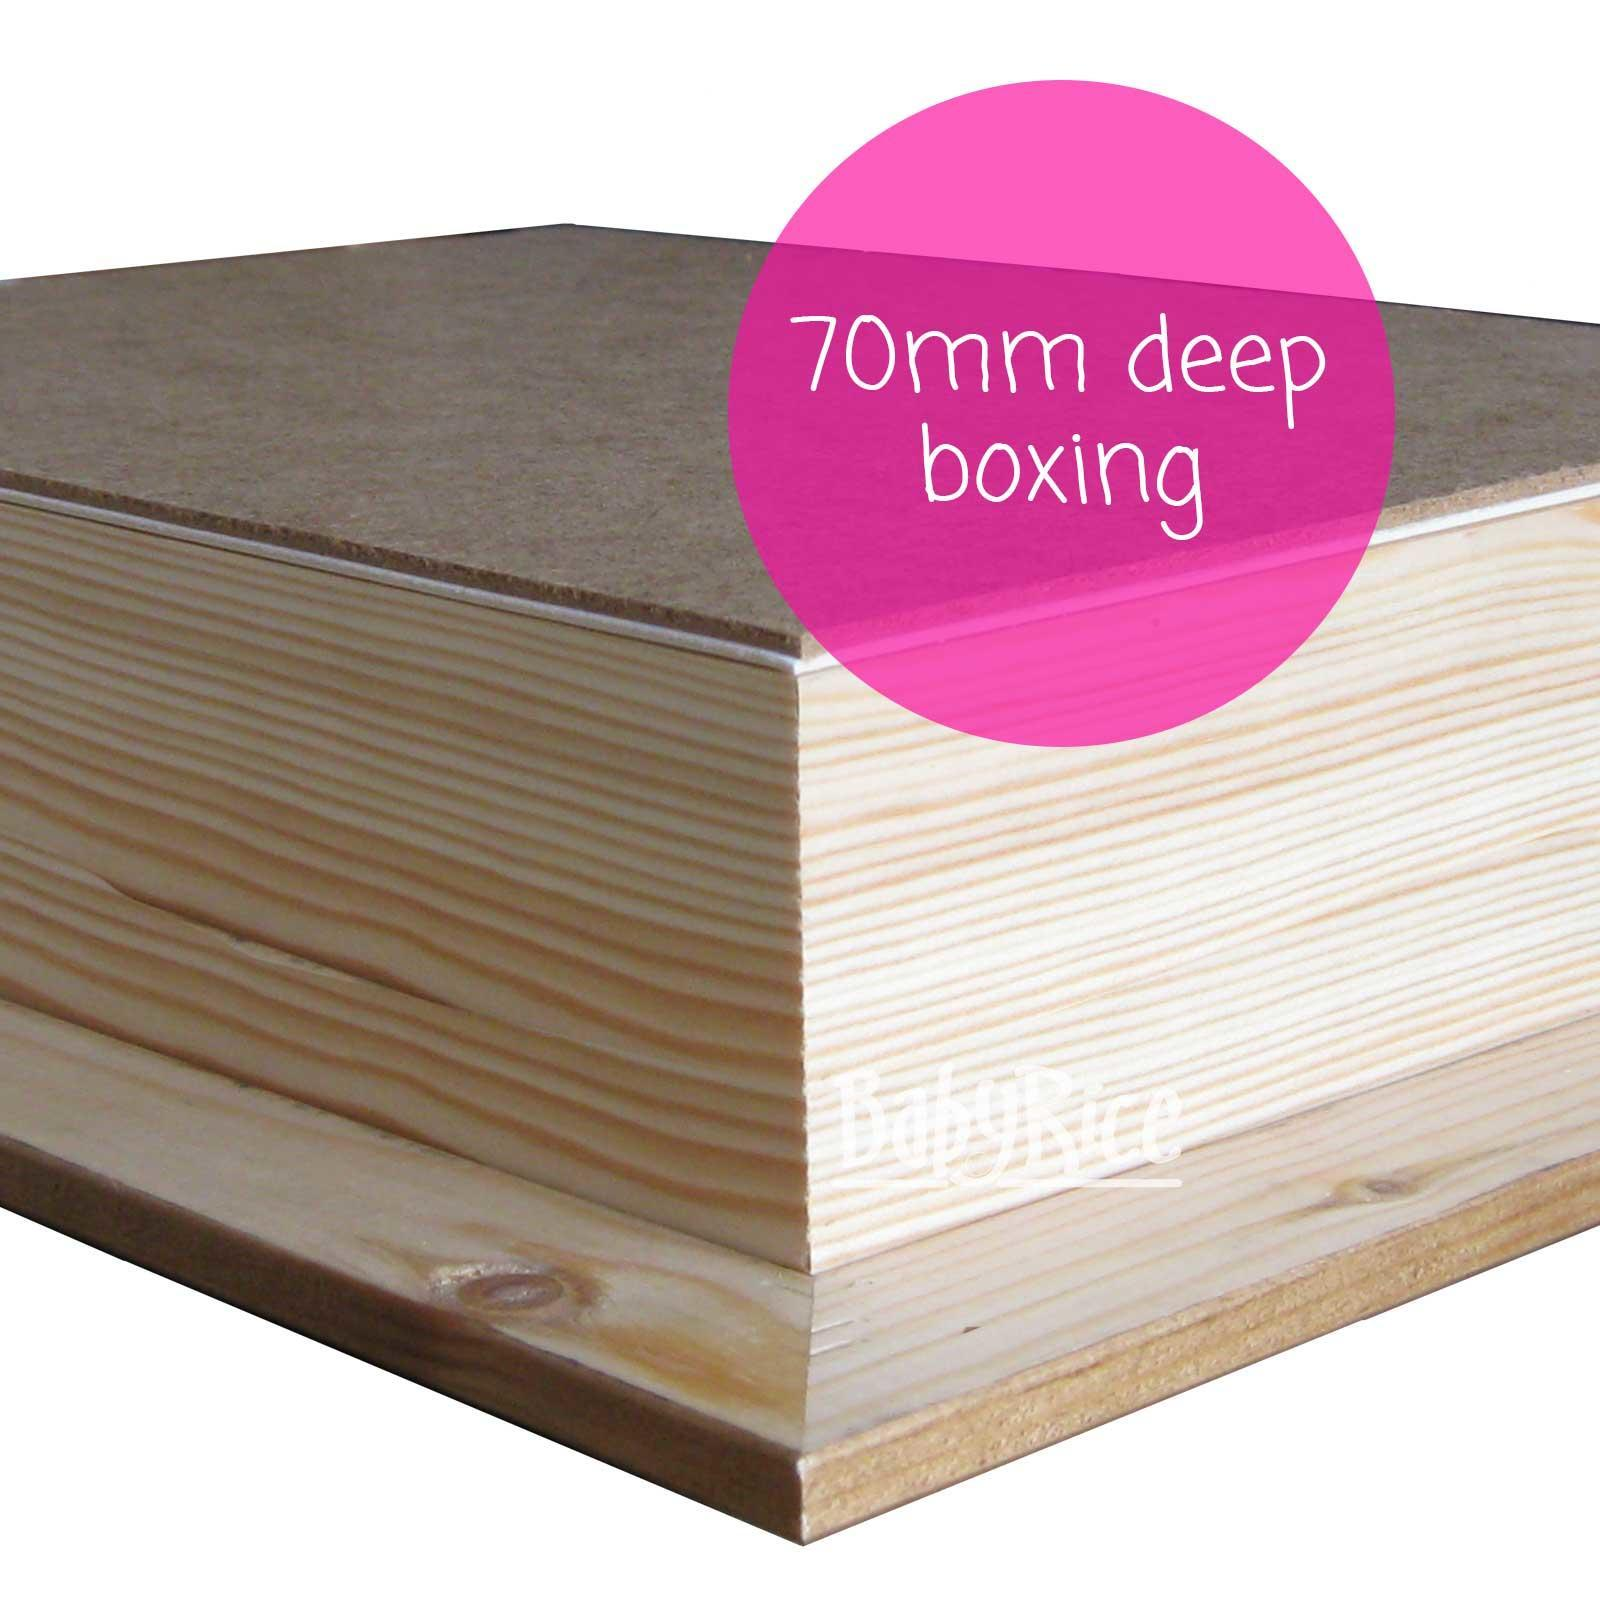 Example of rear pine box 70mm